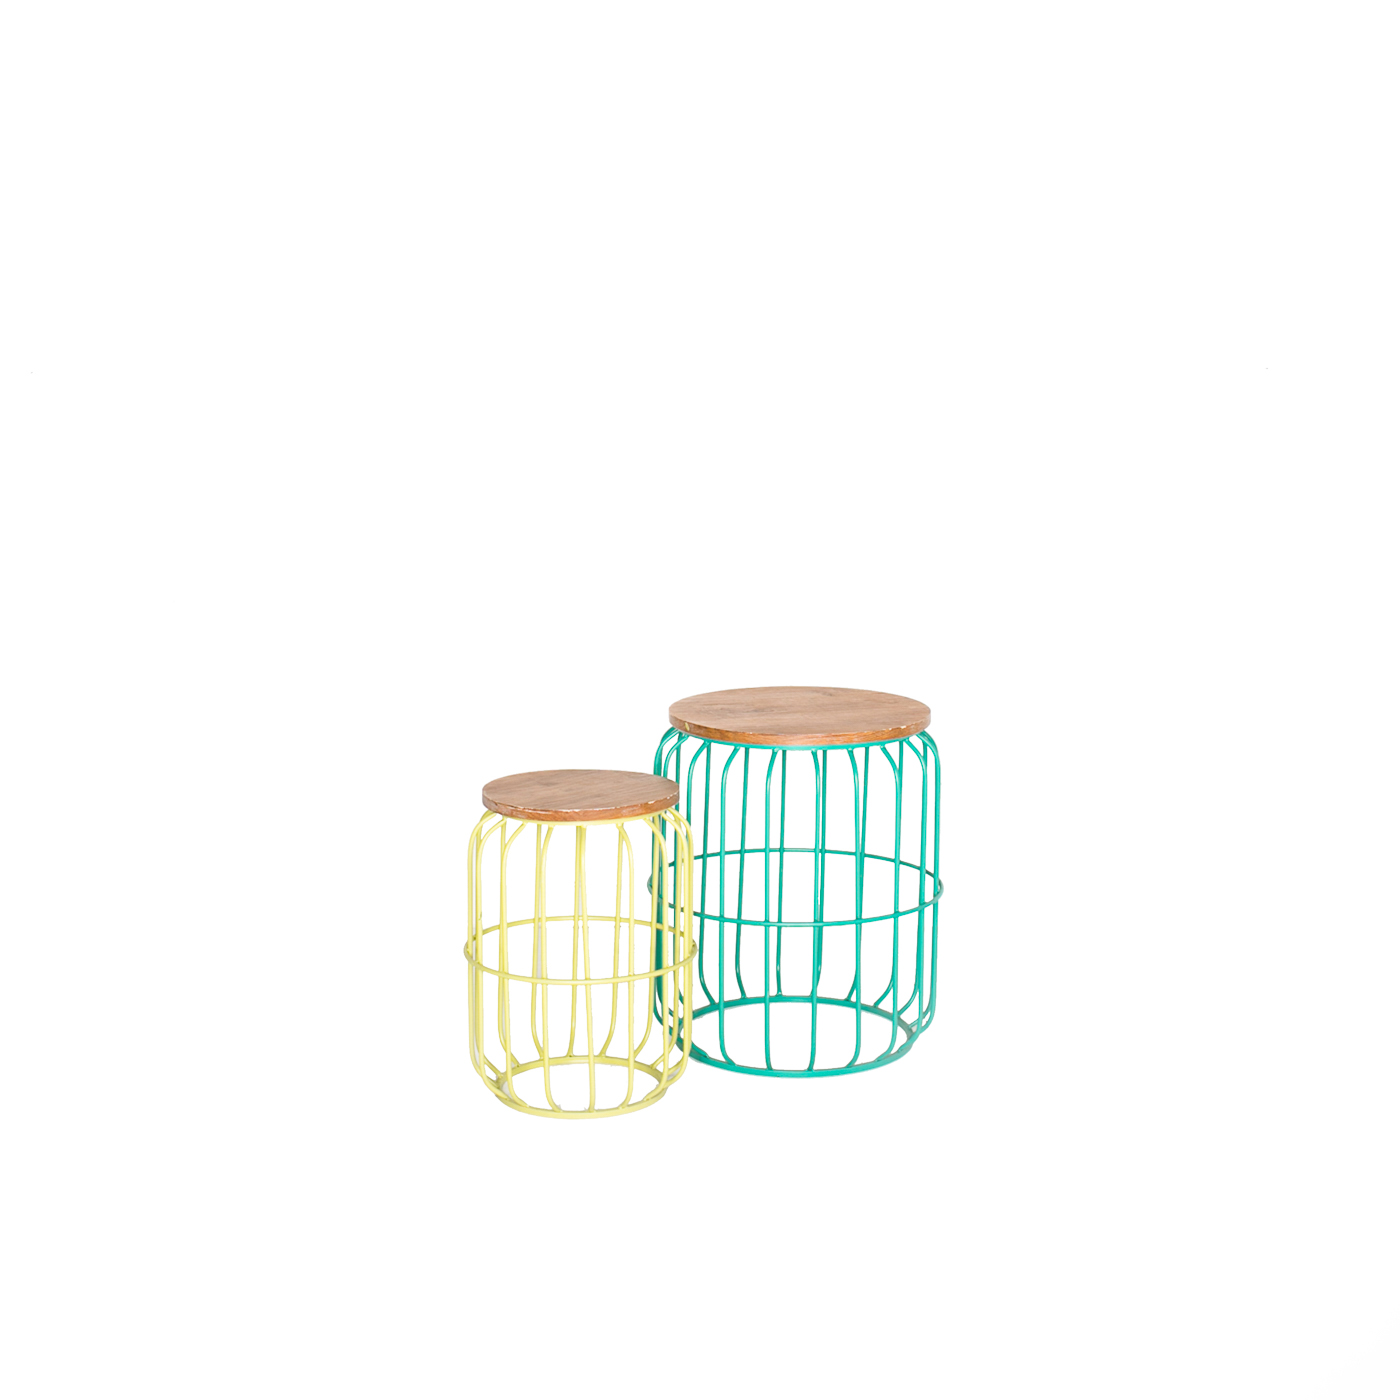 brass drum accent tables pow wow design studio table cactus barrel modern furniture for small spaces farmhouse dining set glass nesting target console teal decor barn door